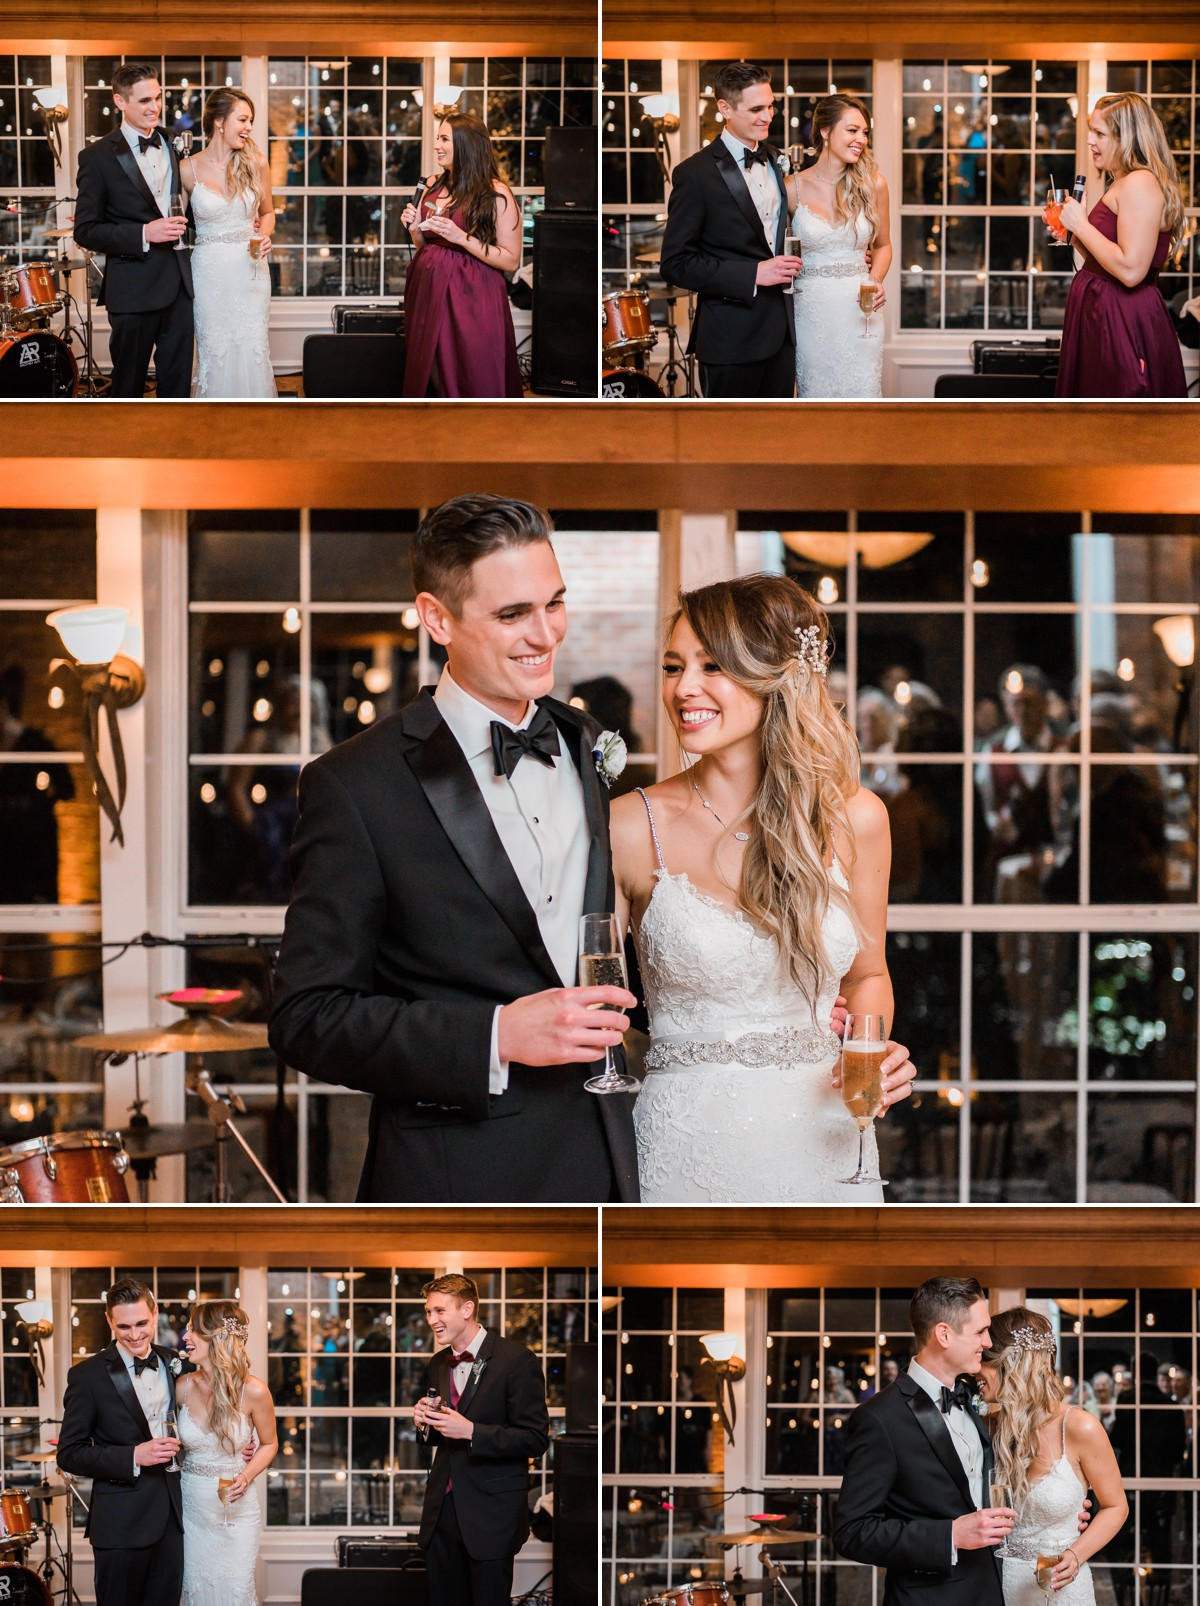 Manor House Wedding at The Houstonian Hotel Reception Toast Bride and Groom